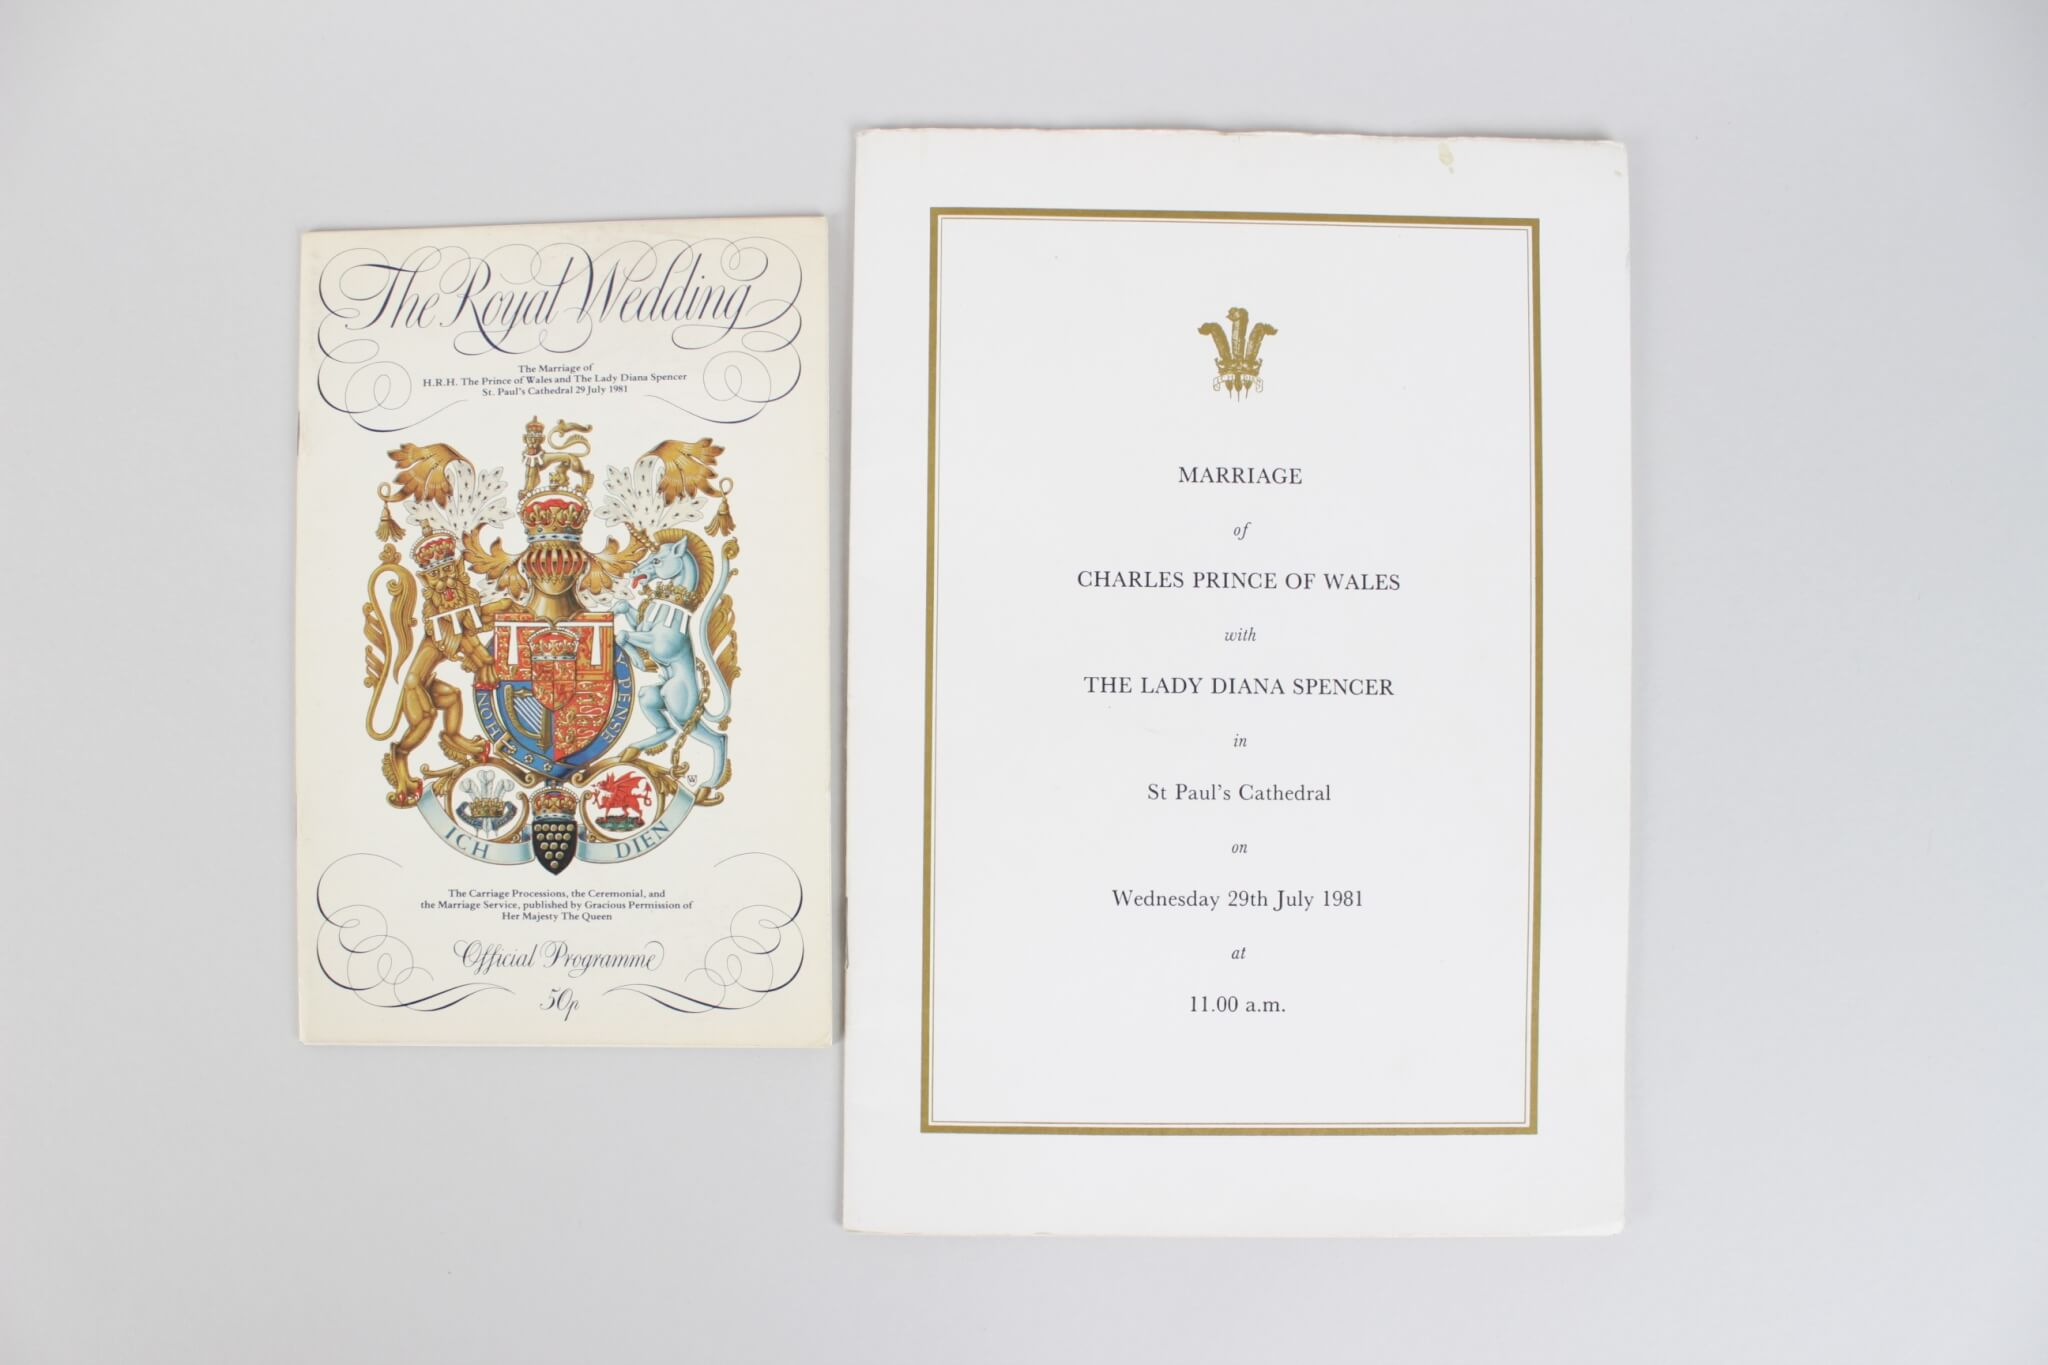 1981 the royal wedding invited guest invitation celebration programs - Royal Wedding Invitation